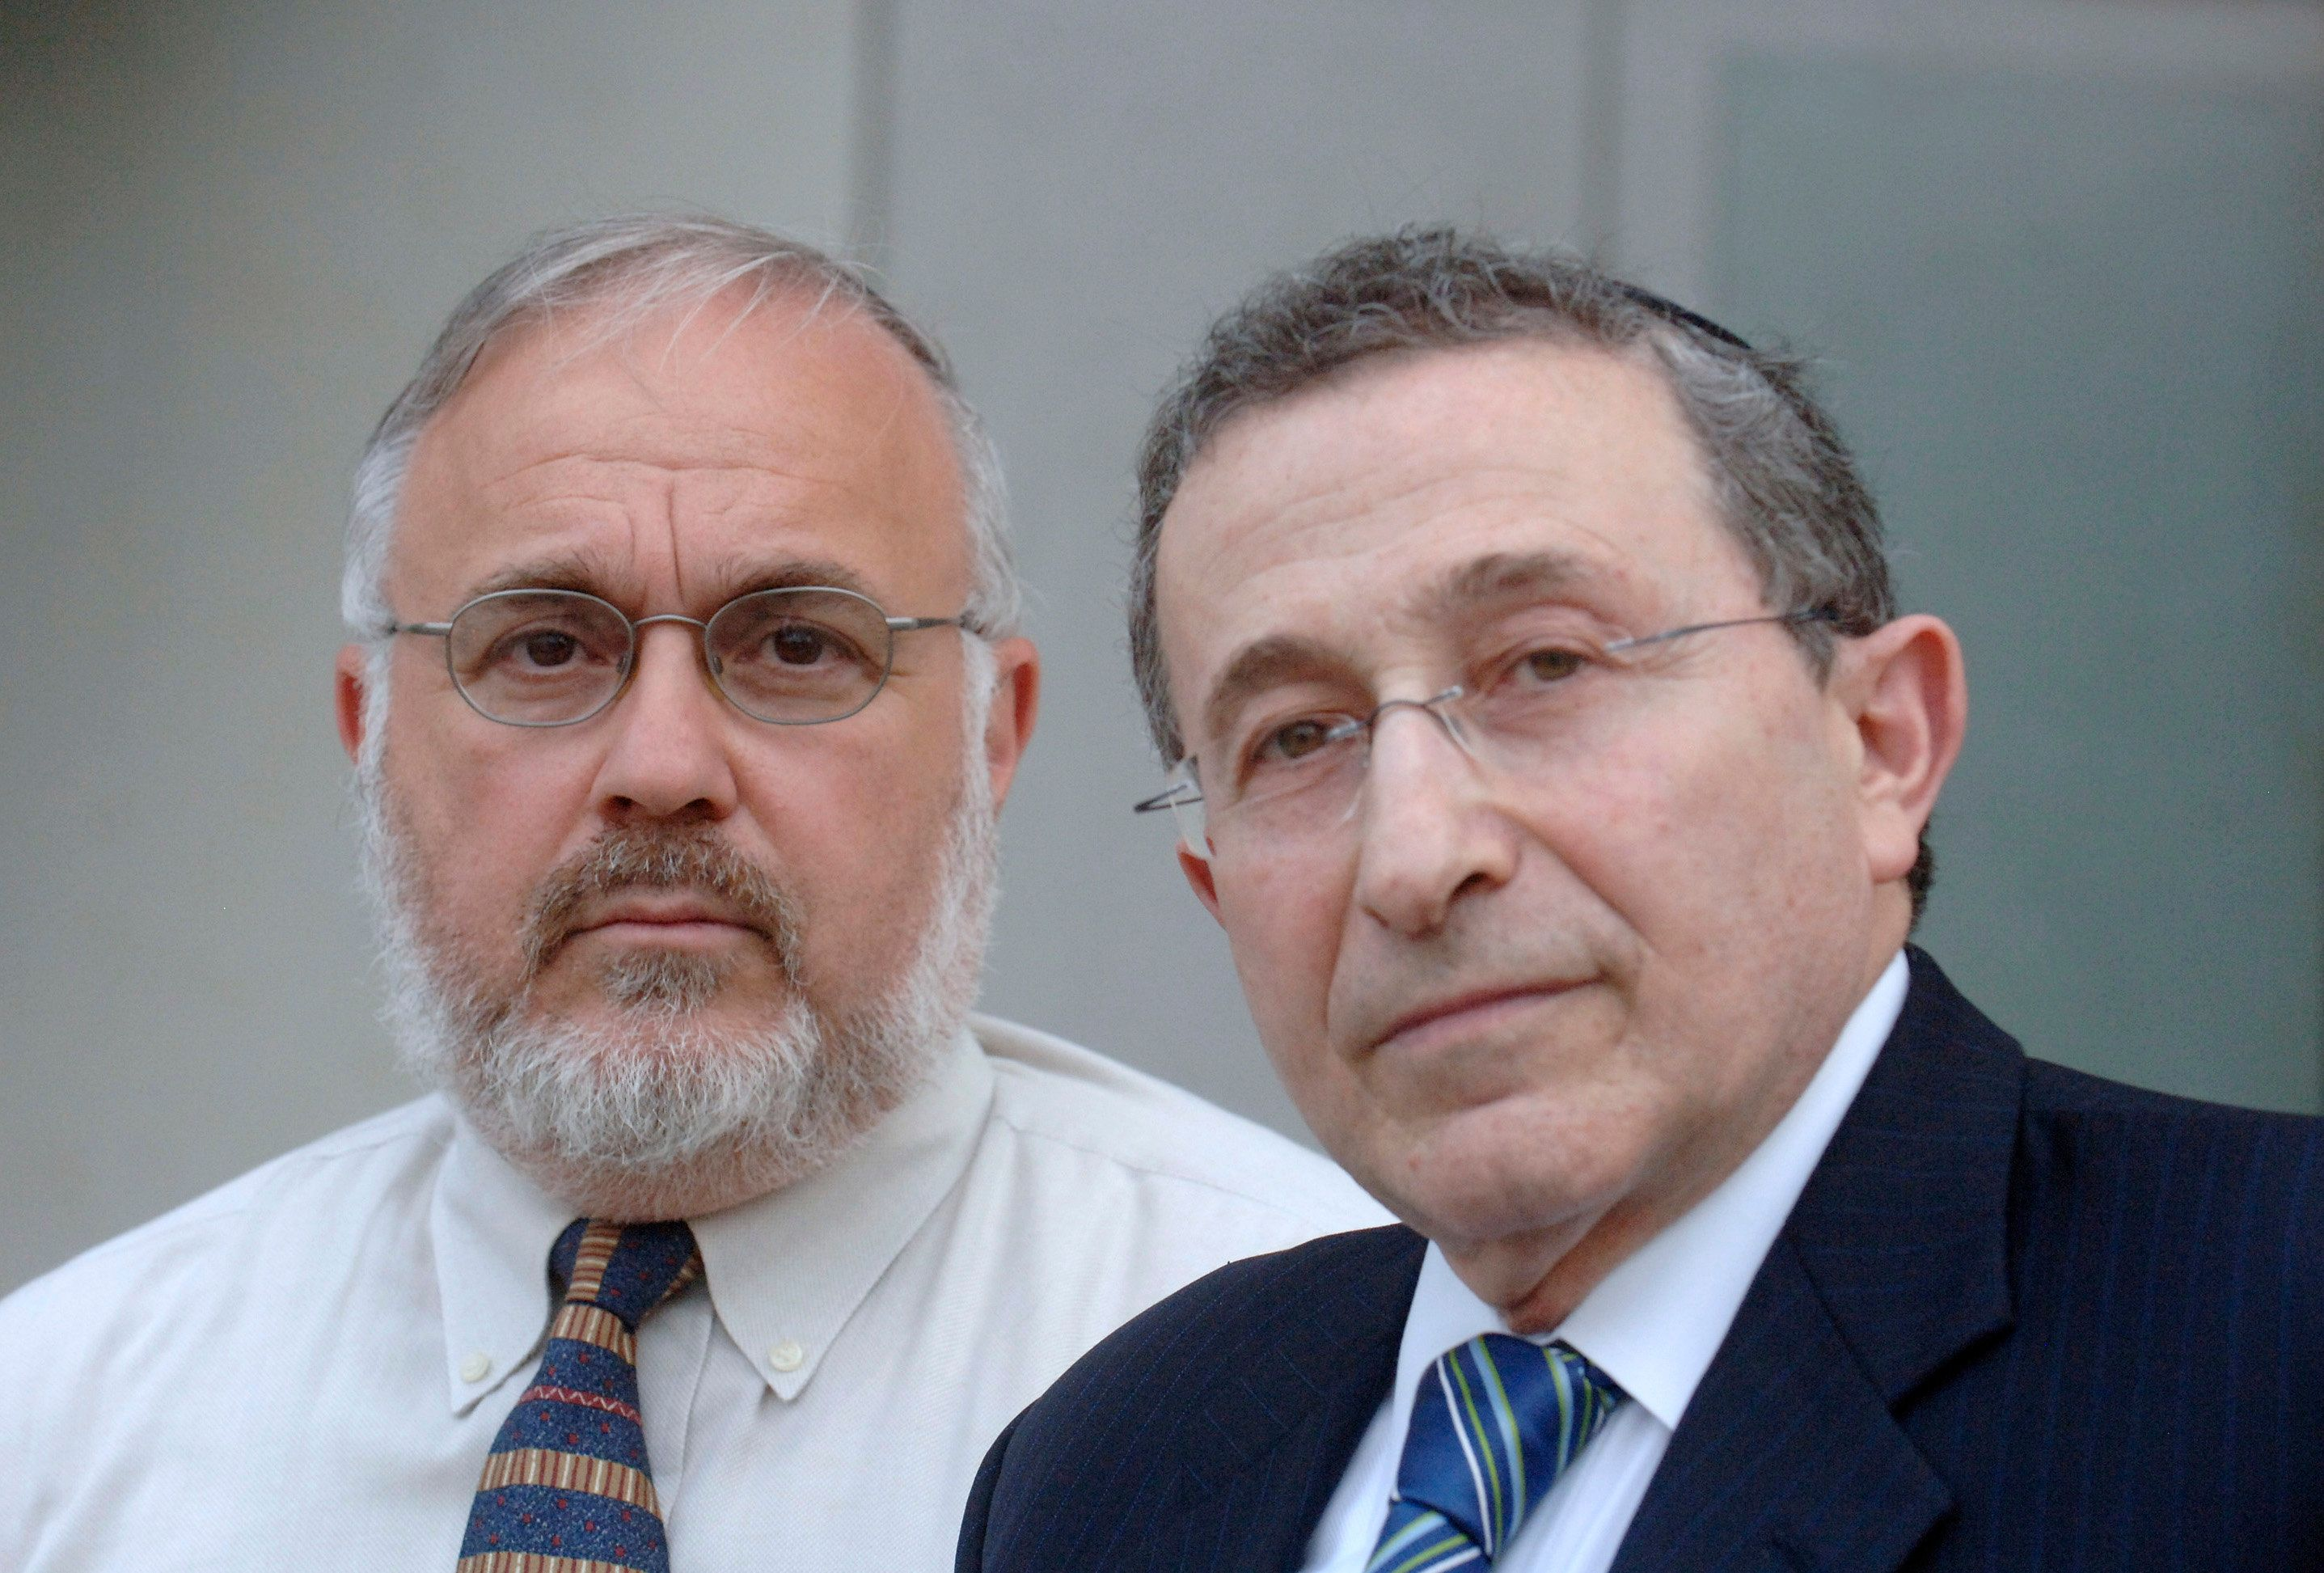 Rabbi Abraham Cooper (left) and Rabbi Marvin Hier of the Simon Wiesenthal Center wrote to Attorney General Jeff Sessions seek